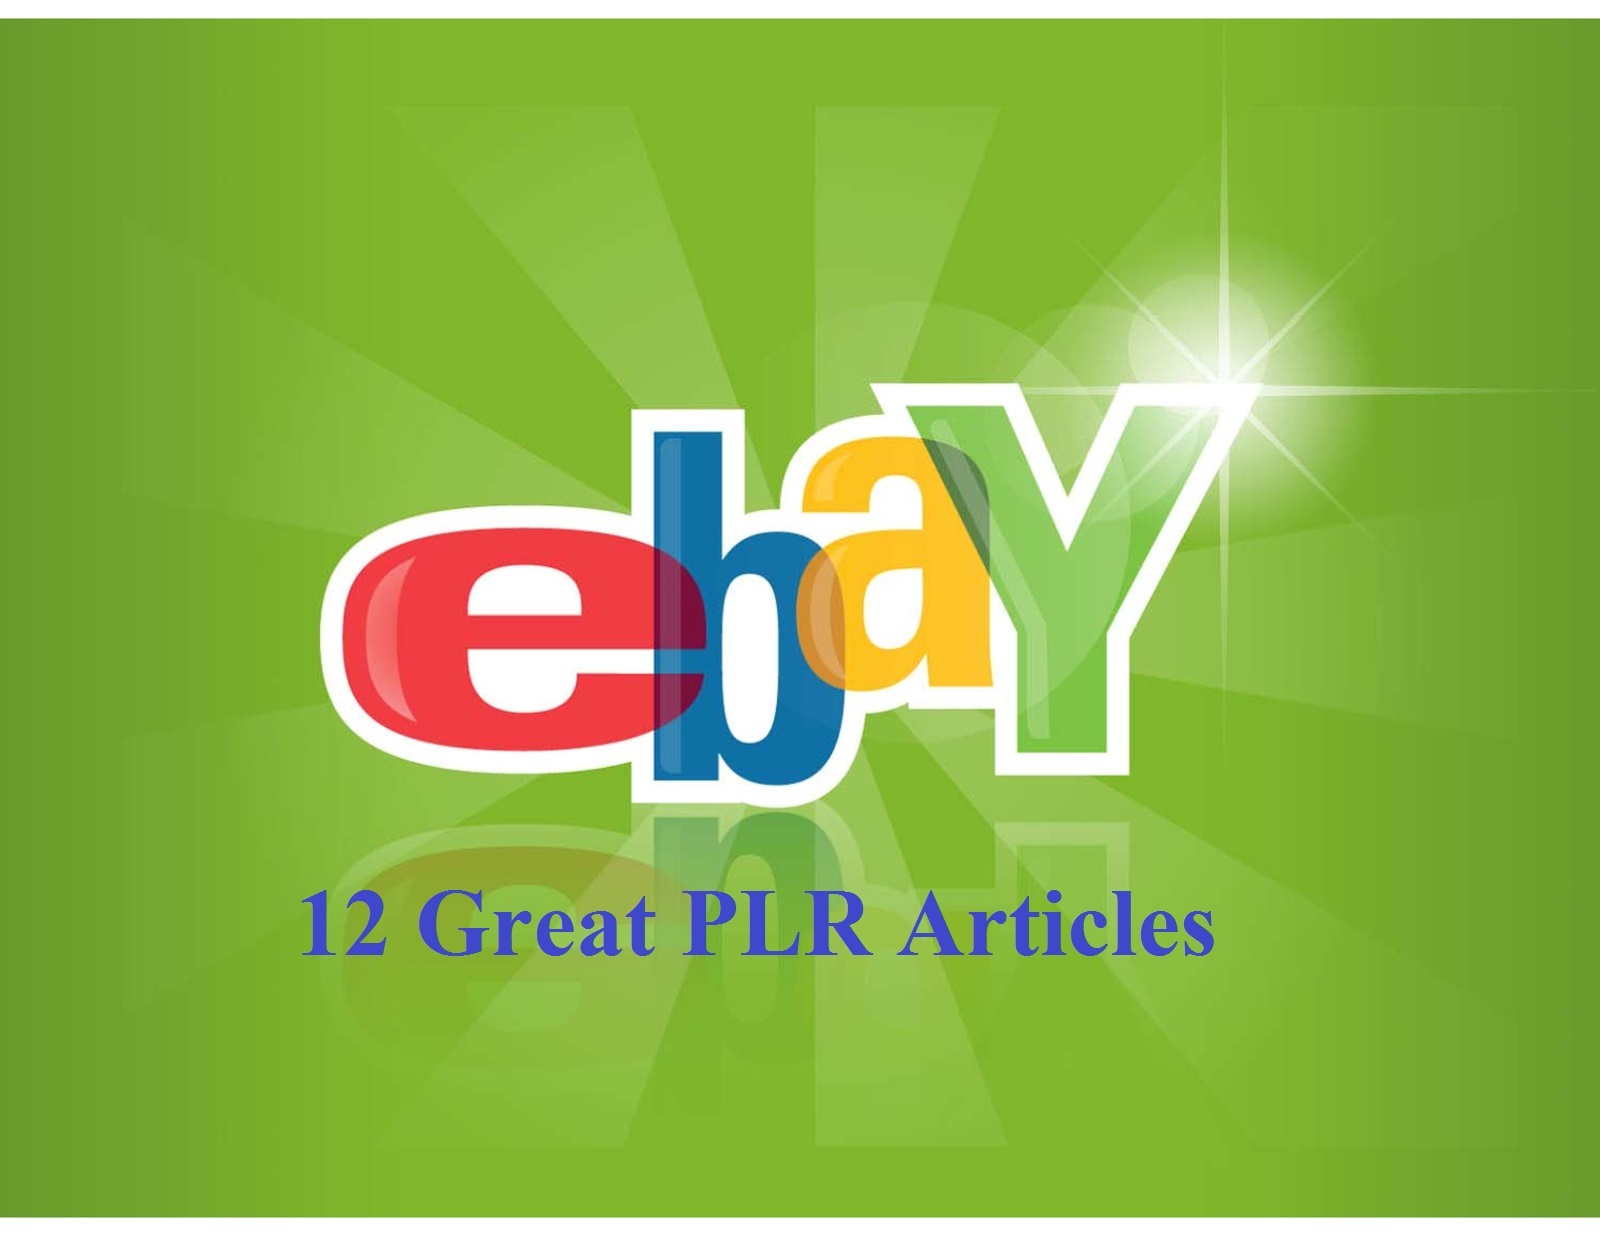 12 Great eBay PLR Articles - Get Your Copy Now!